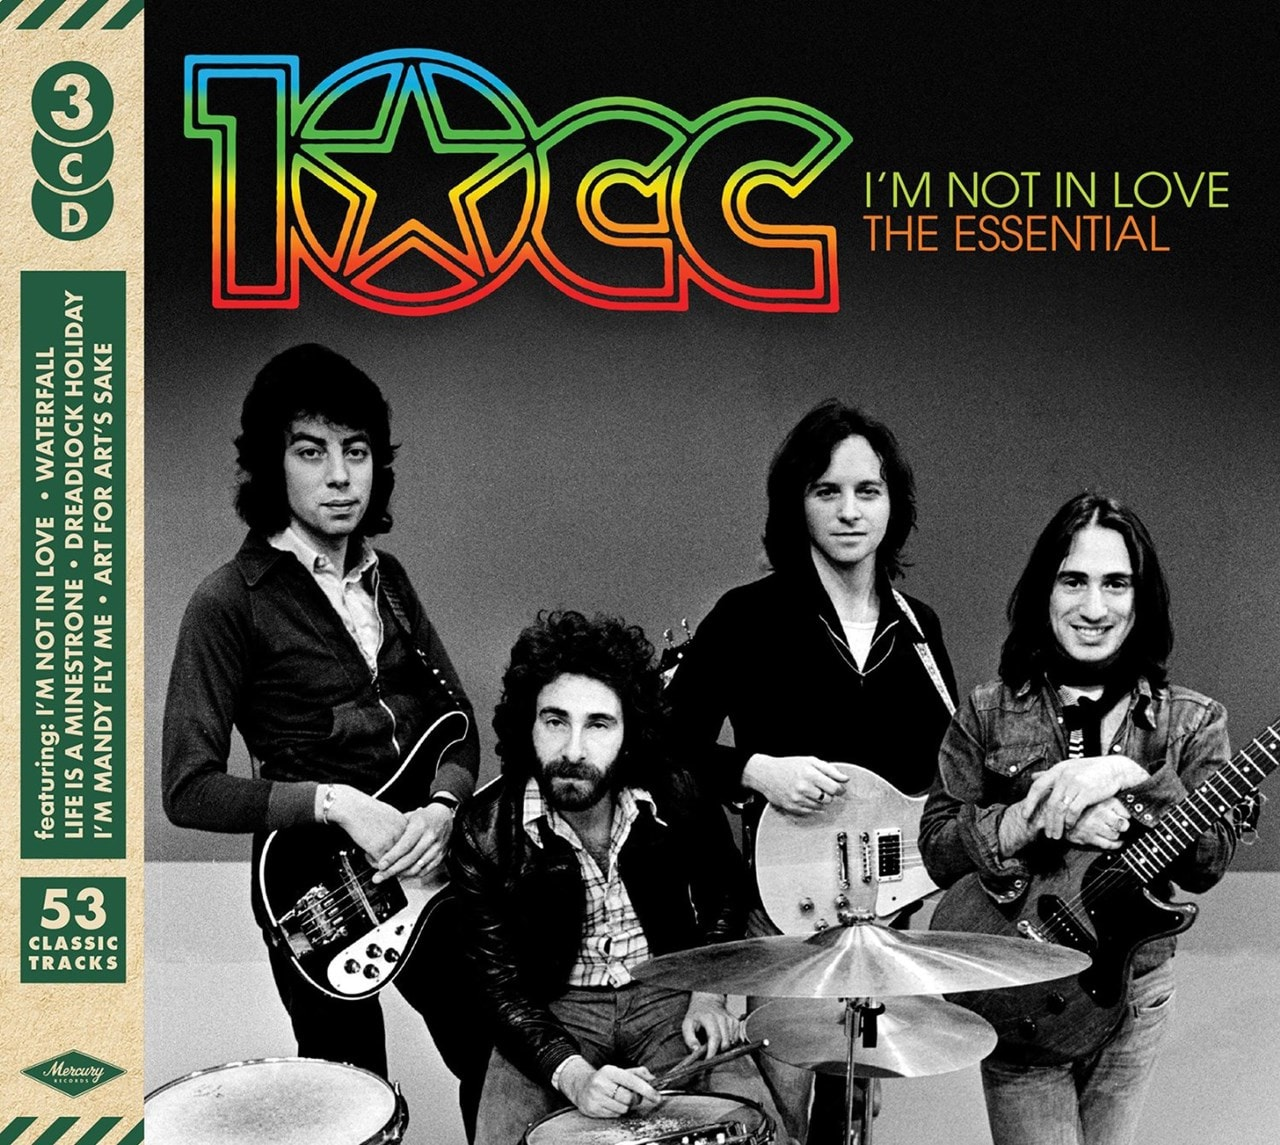 I'm Not in Love: The Essential 10cc - 1